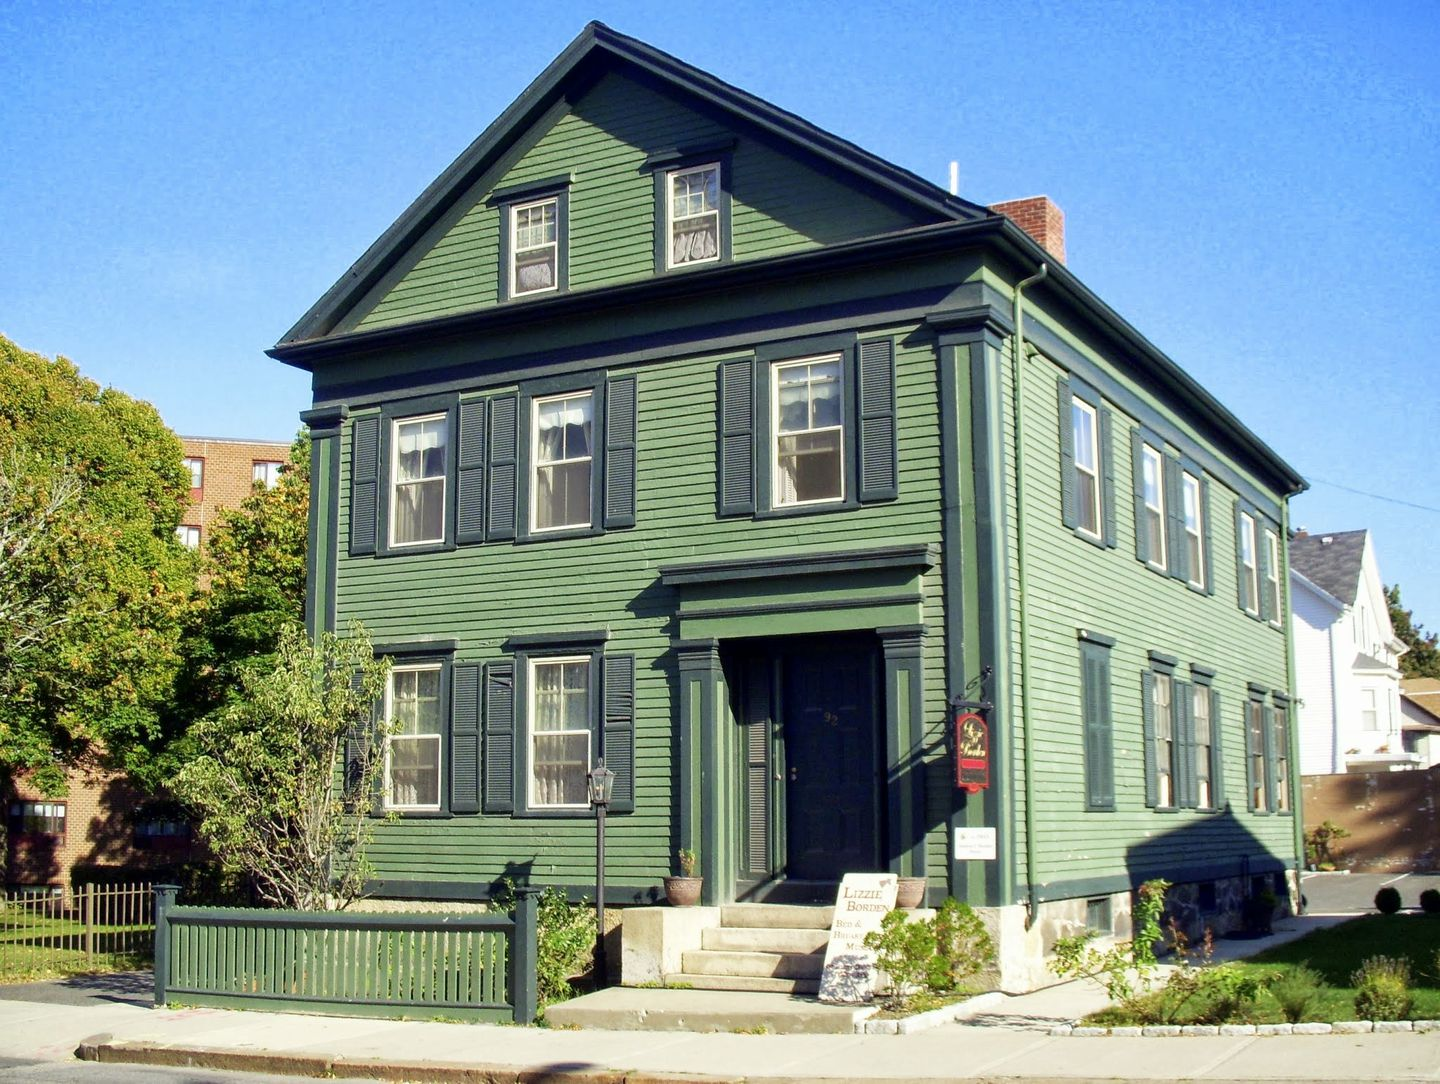 For $2 million, you can own the house where Lizzie Borden's family was  murdered - The Boston Globe